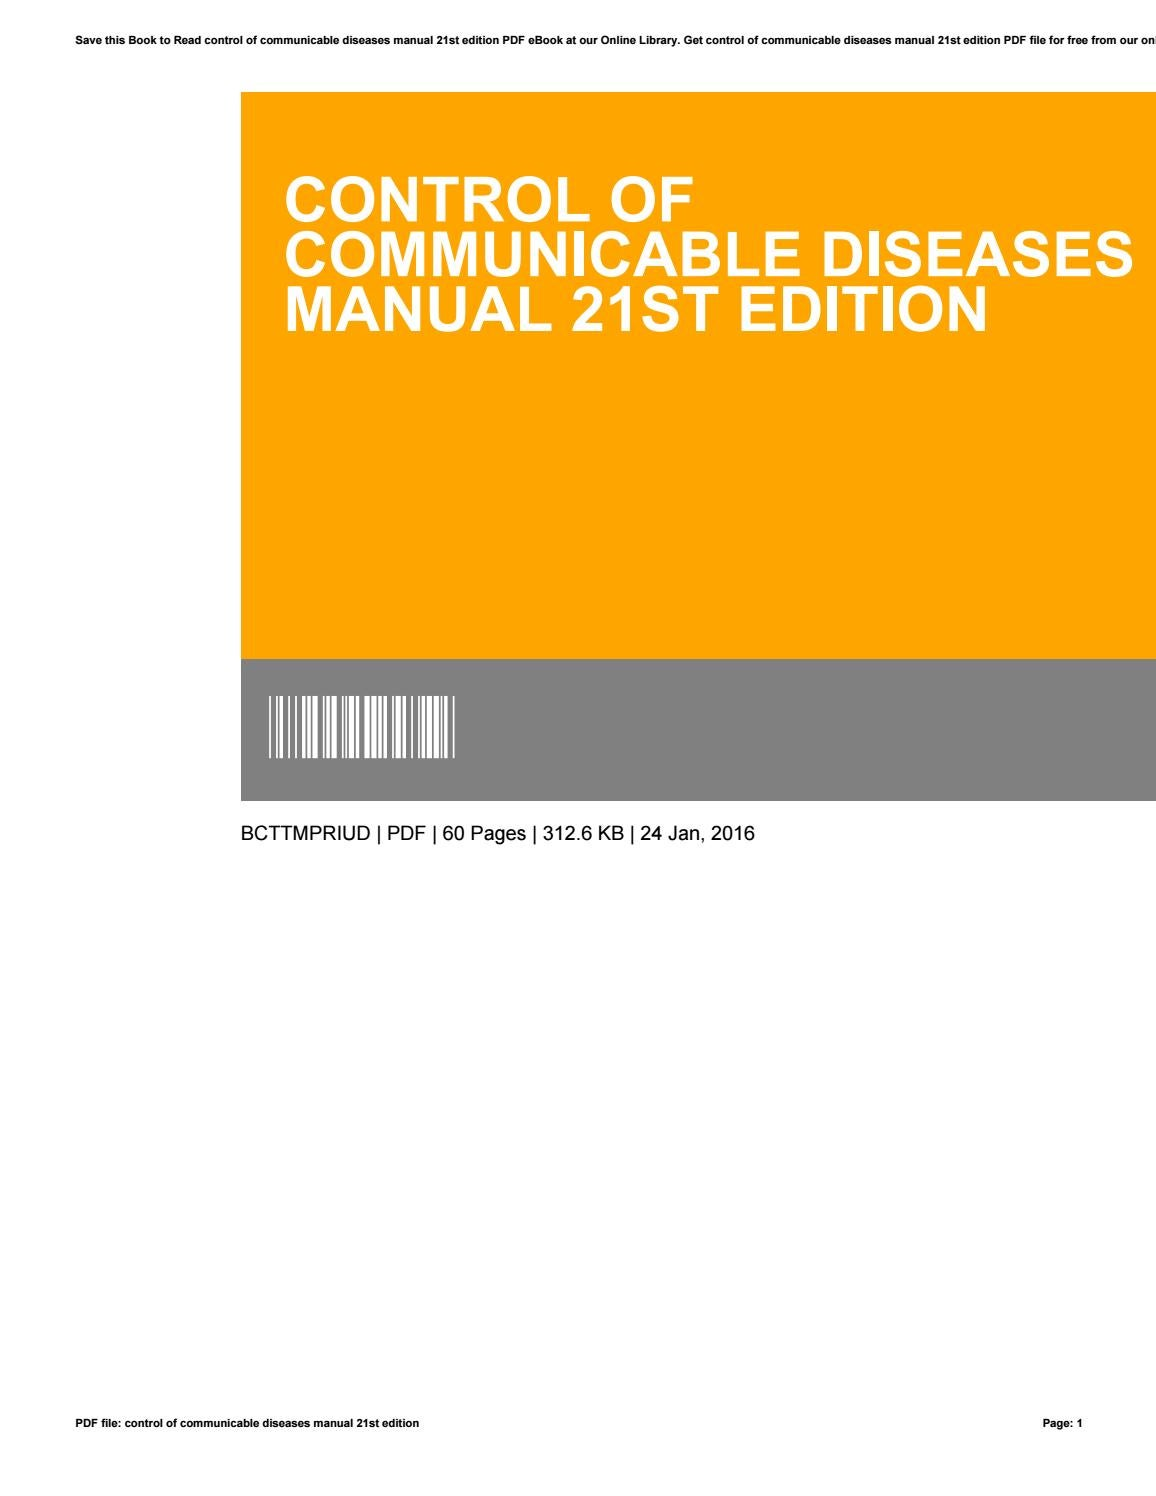 Control of communicable diseases manual 21st edition by StephanieMalik1243  - issuu